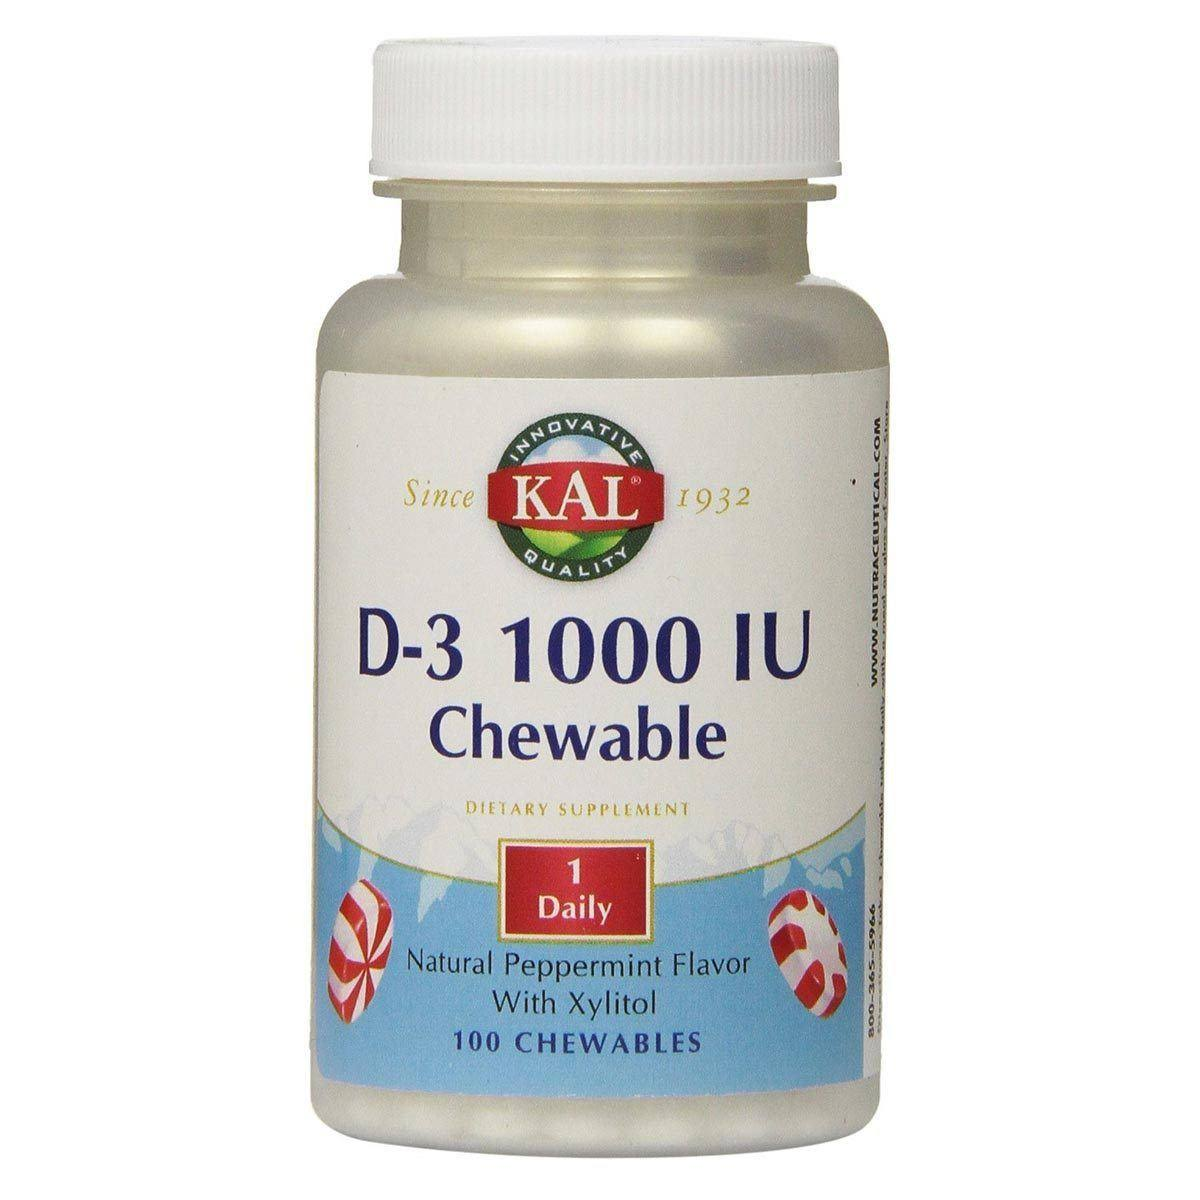 Kal D-3 Chewable Dietary Supplement - 1000 IU, 100 Chewables